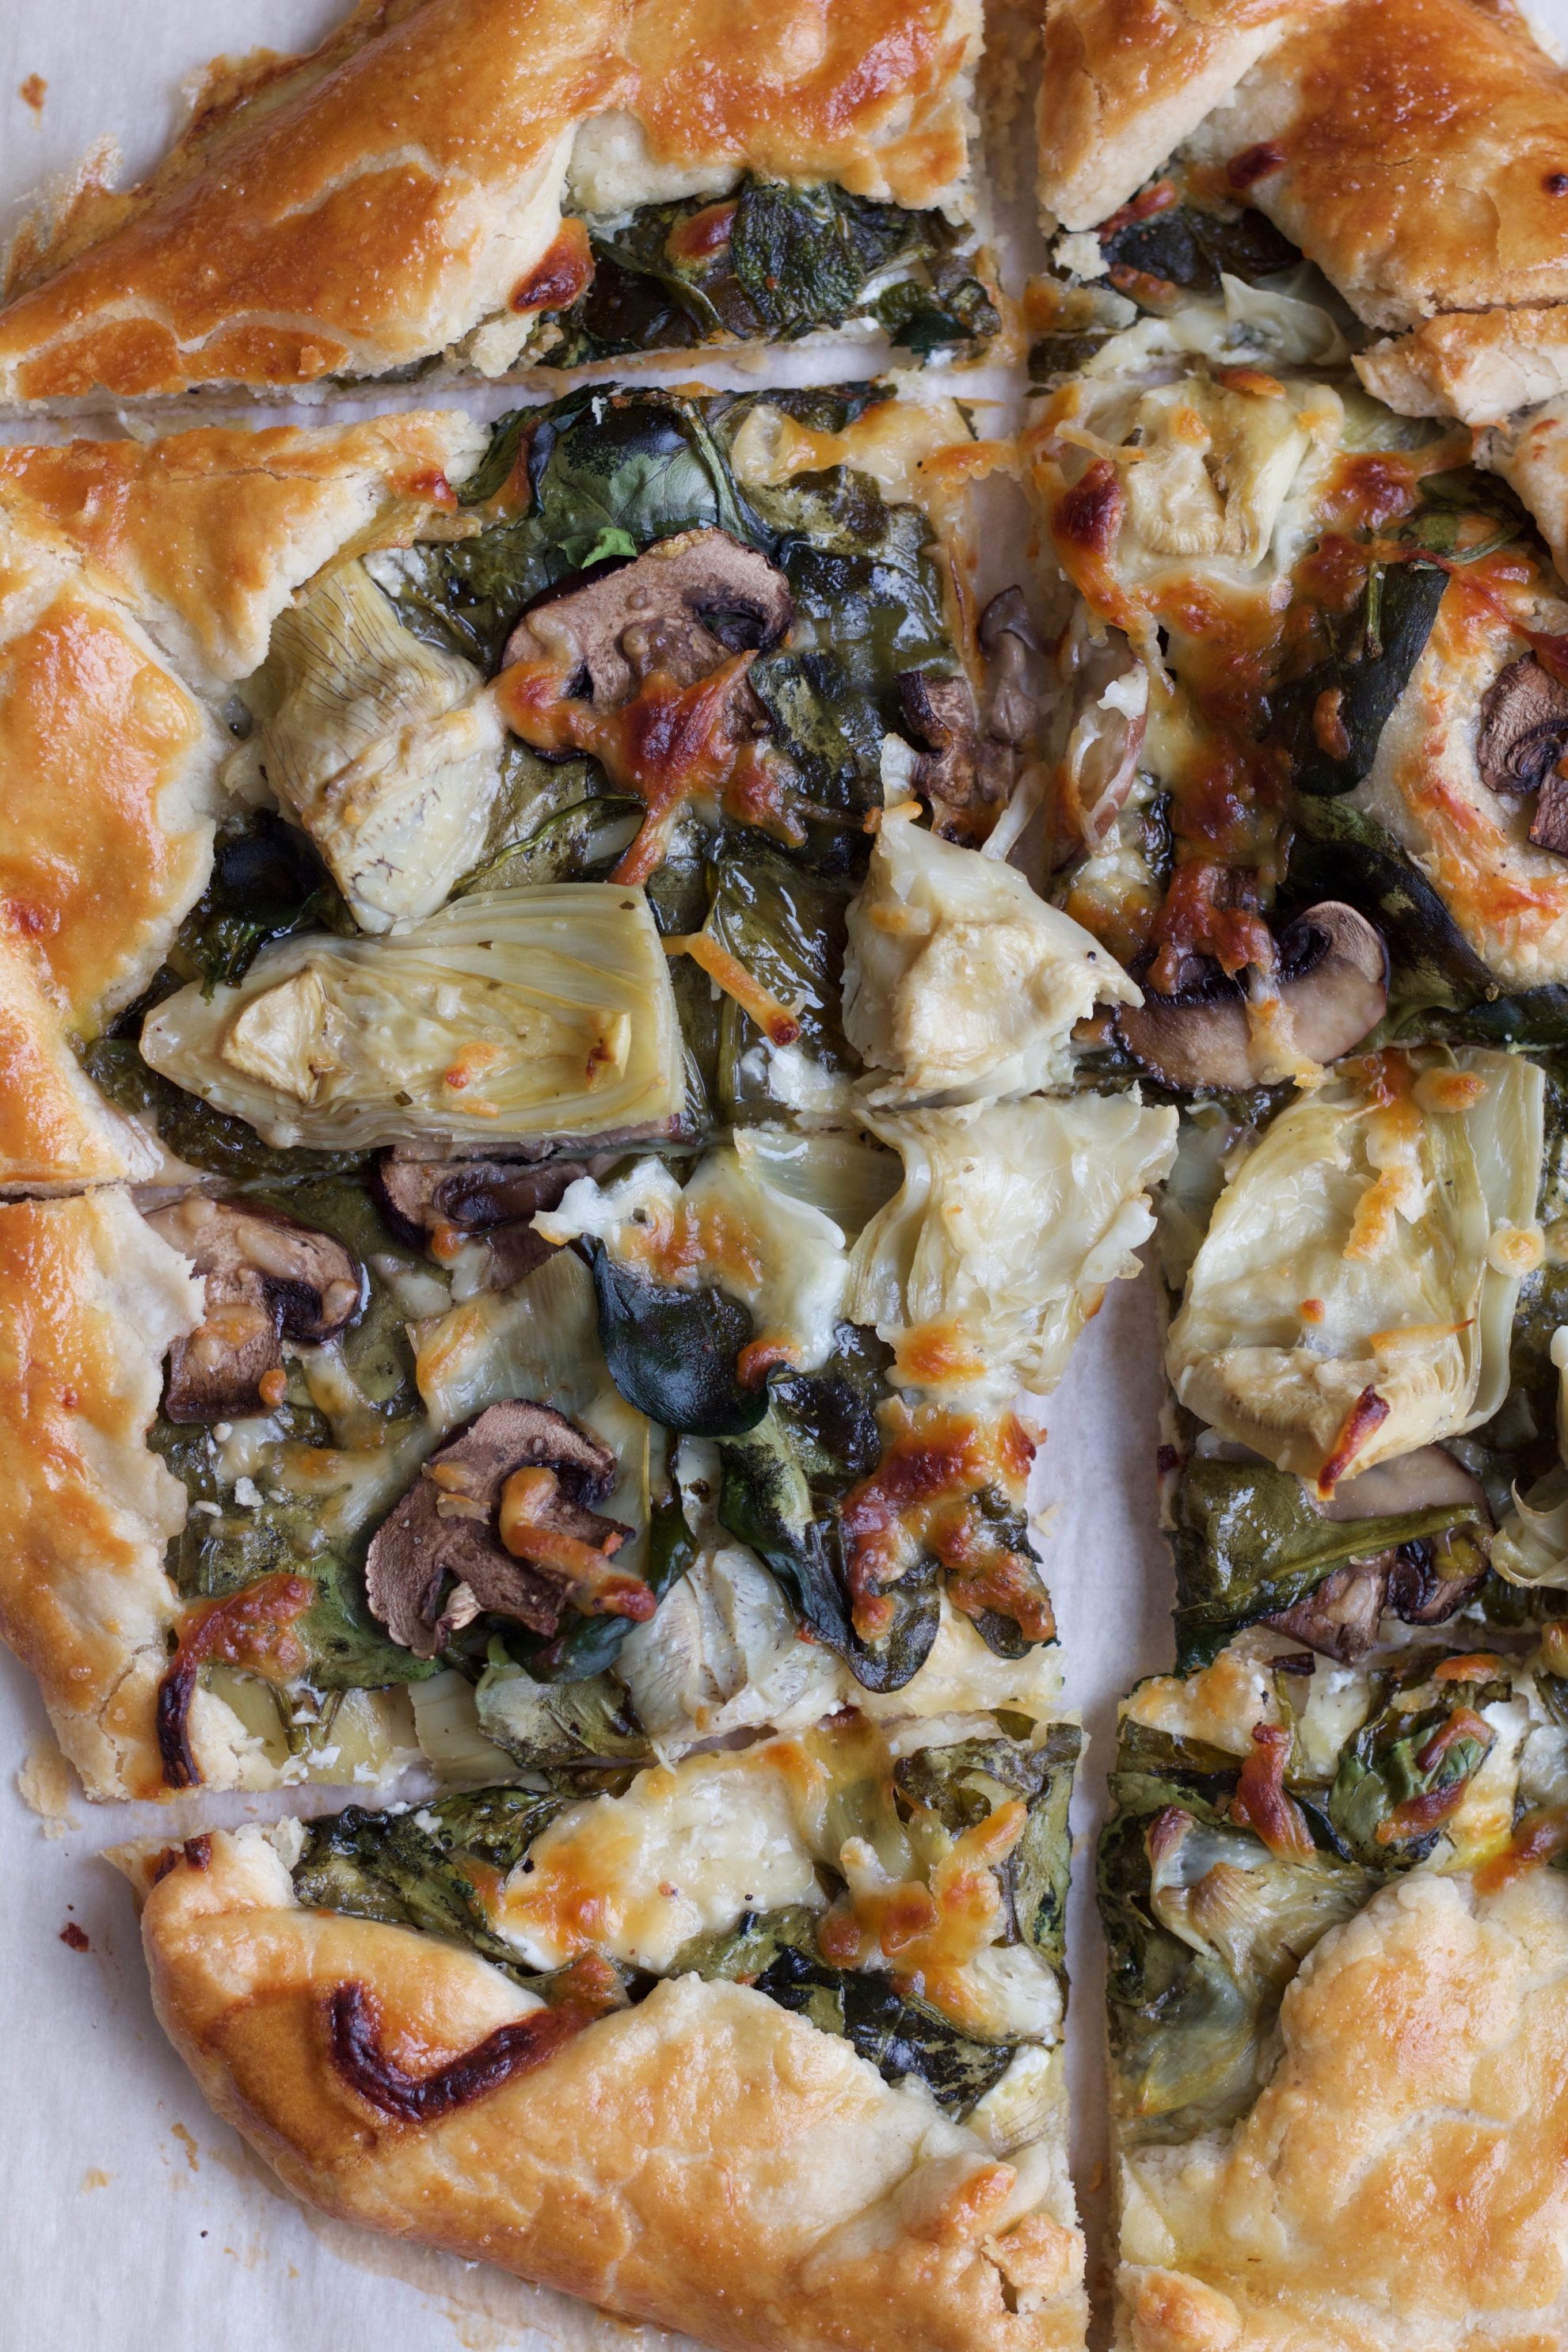 Spinach Mushroom and Artichoke Galette. So delicious and easy to make! Impress your family and friends with this savory tart. It's a perfect recipe for Easter Brunch!